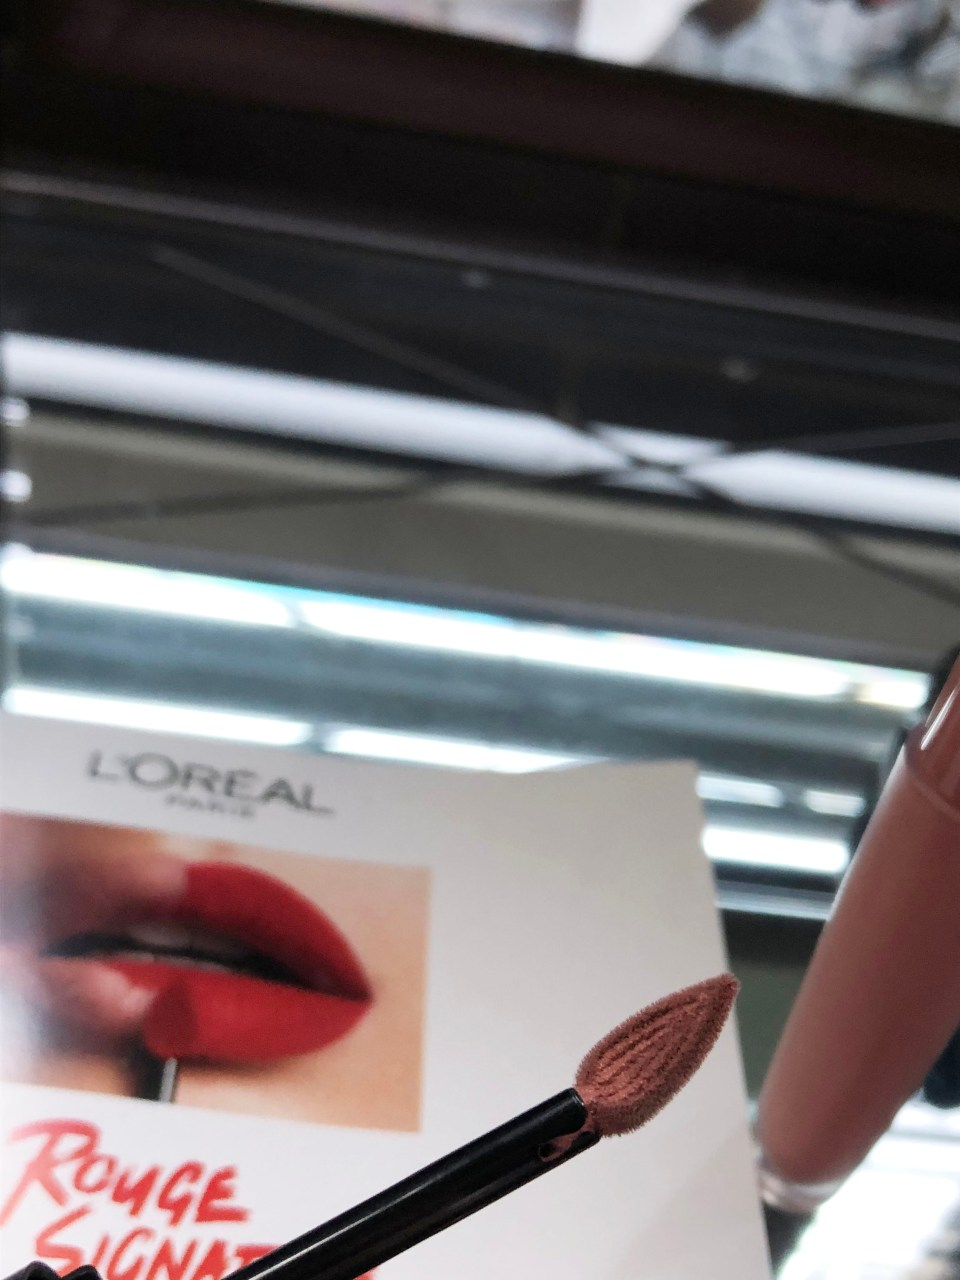 L'Oreal Rouge Signature Matte Colored Ink - I Create